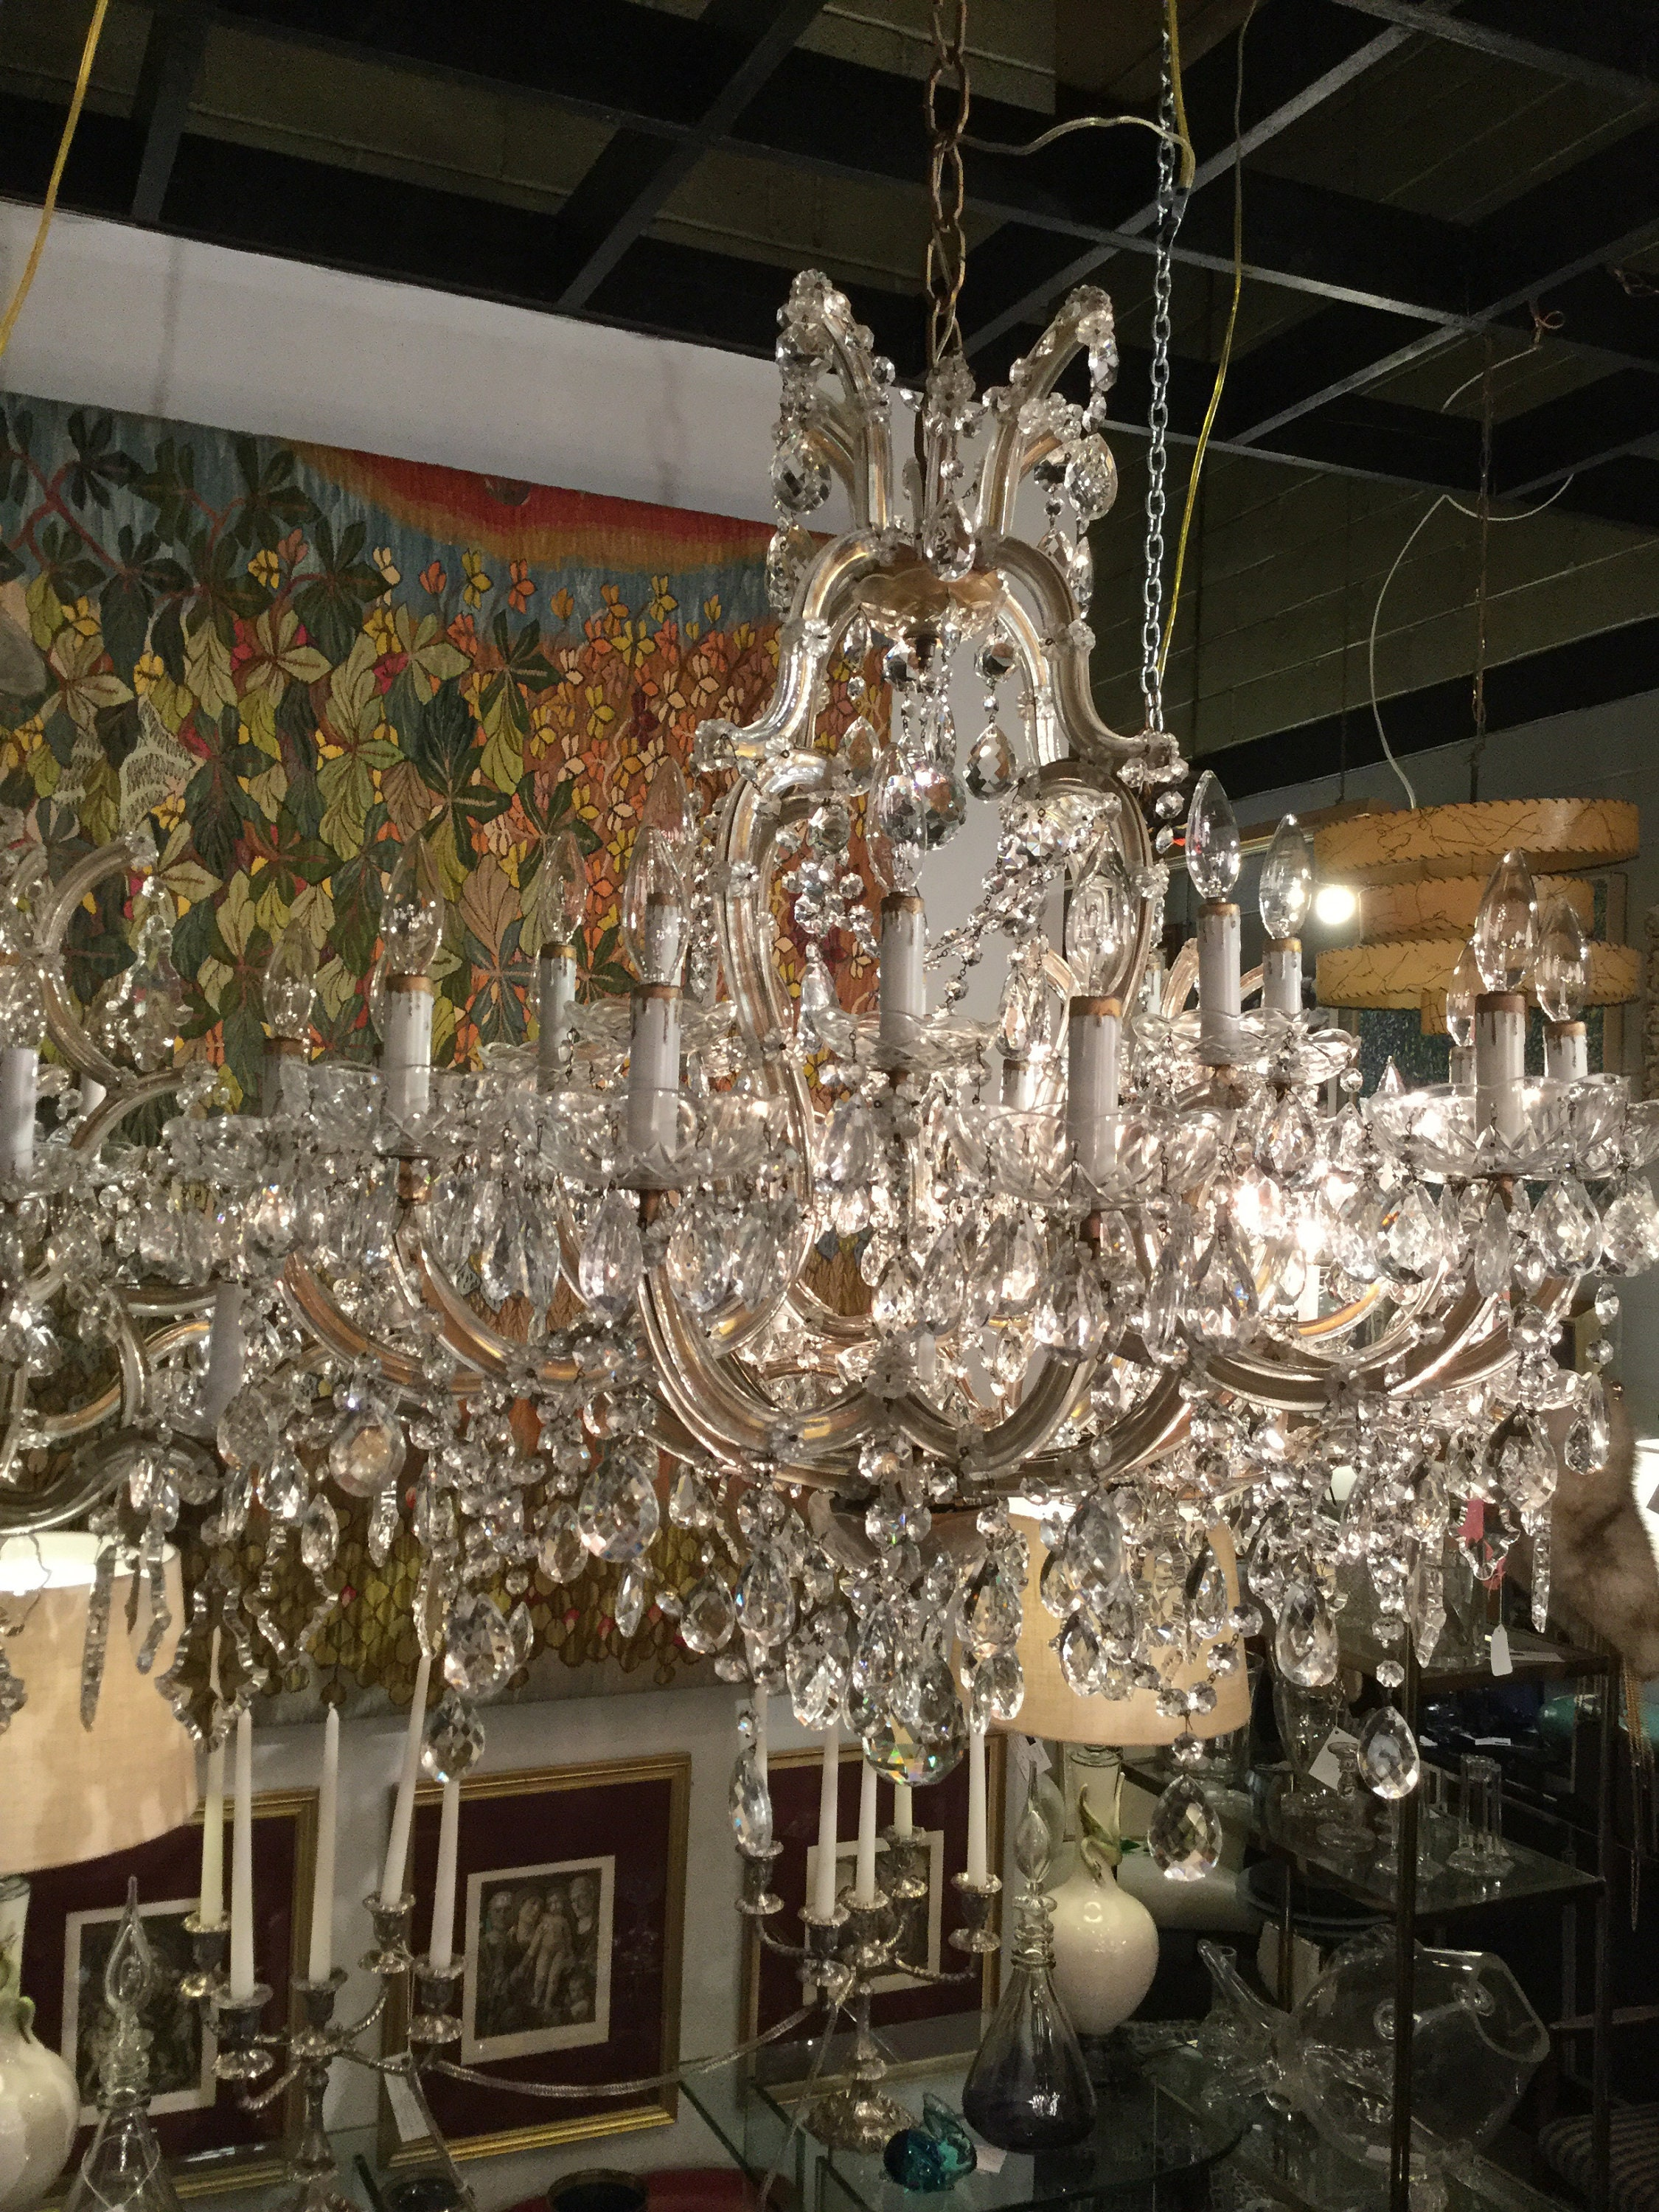 Monumental 21 Lights Maria Therese Italian Hand Cut Crystal Chandelier With Bobeche